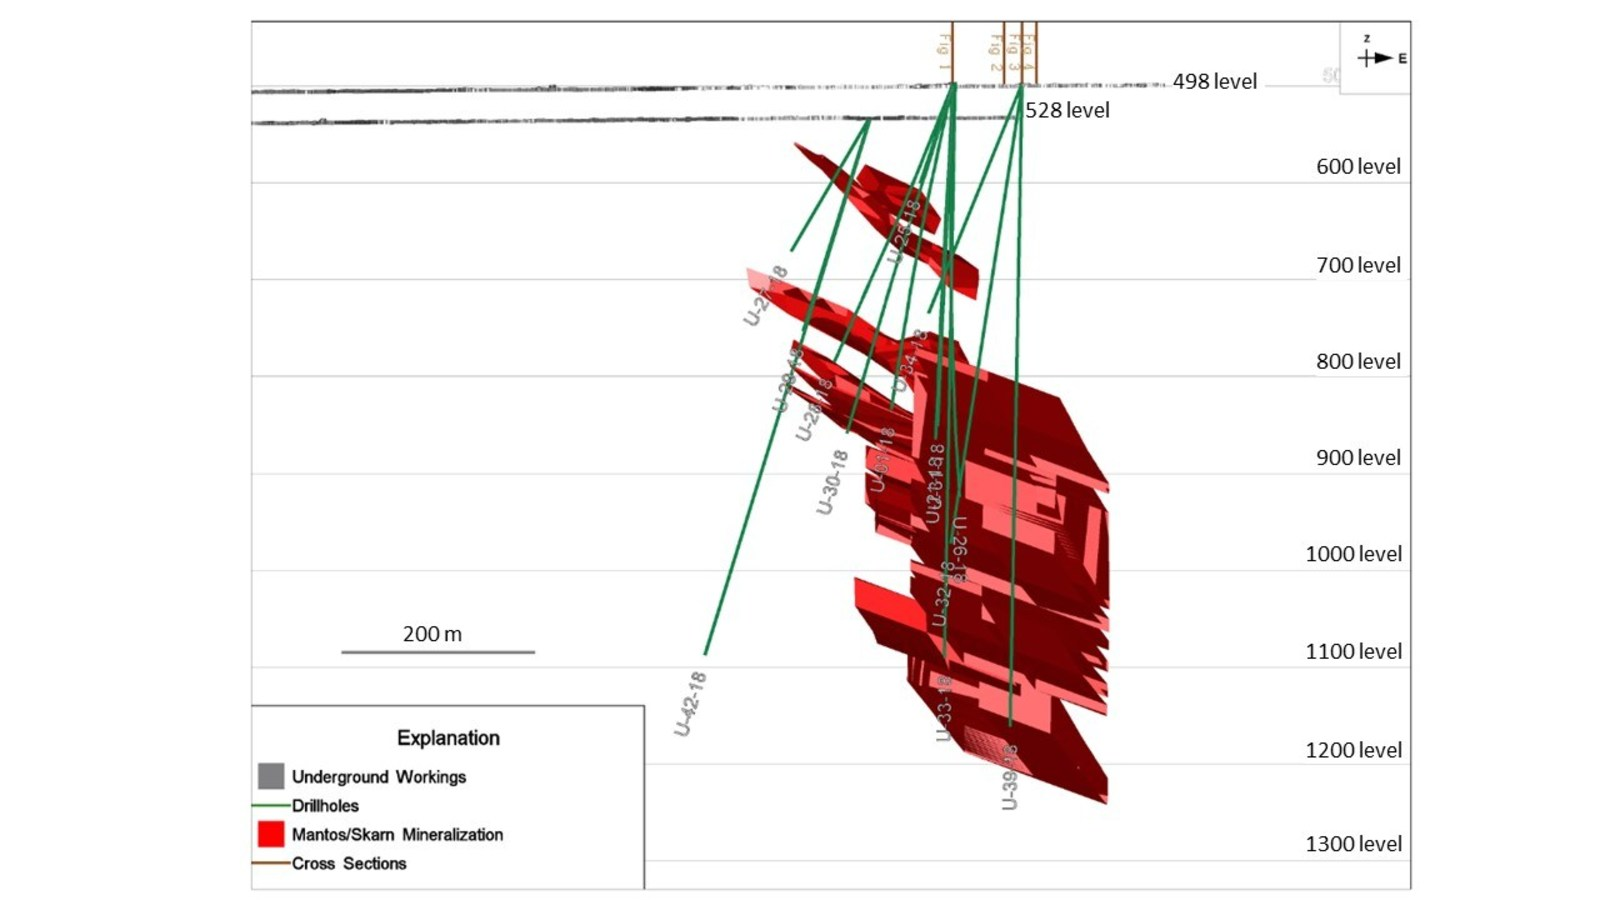 Figure 5: Mineralization interpretation and drill holes with section lines